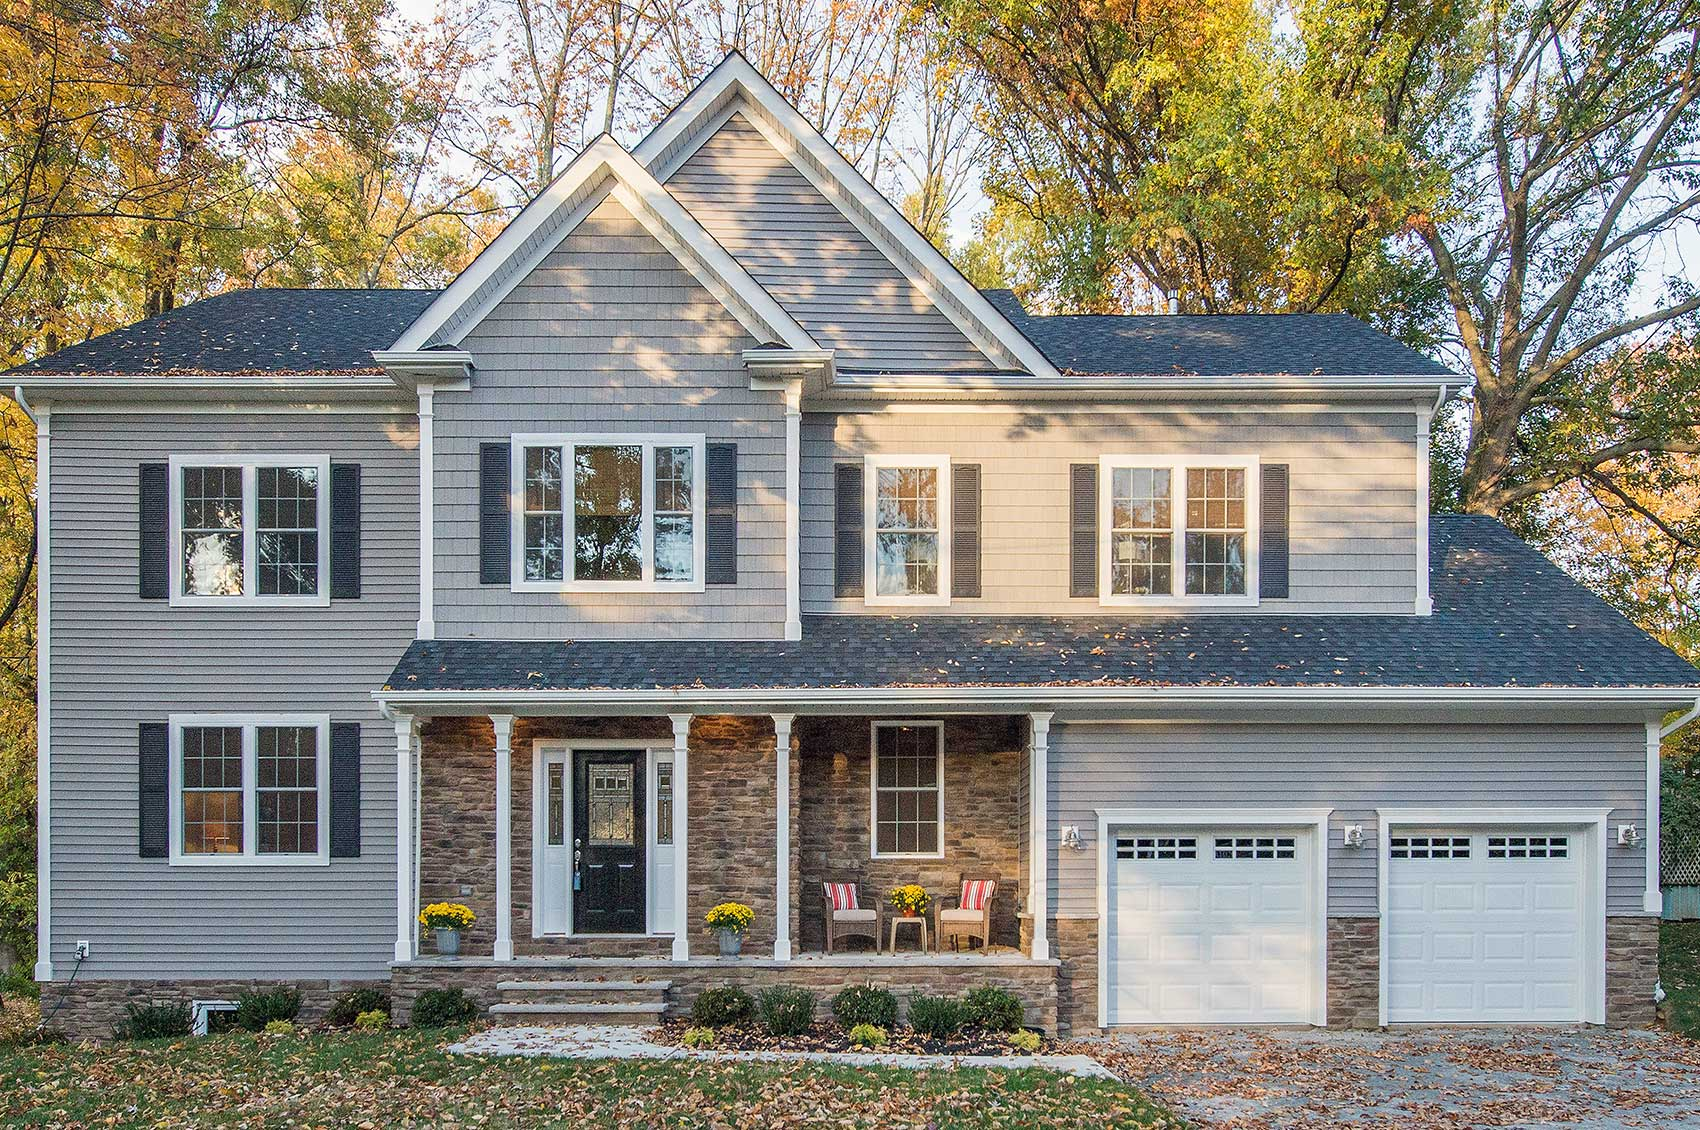 THE WILLIAMS RESIDENCE - BERKELEY HEIGHTS